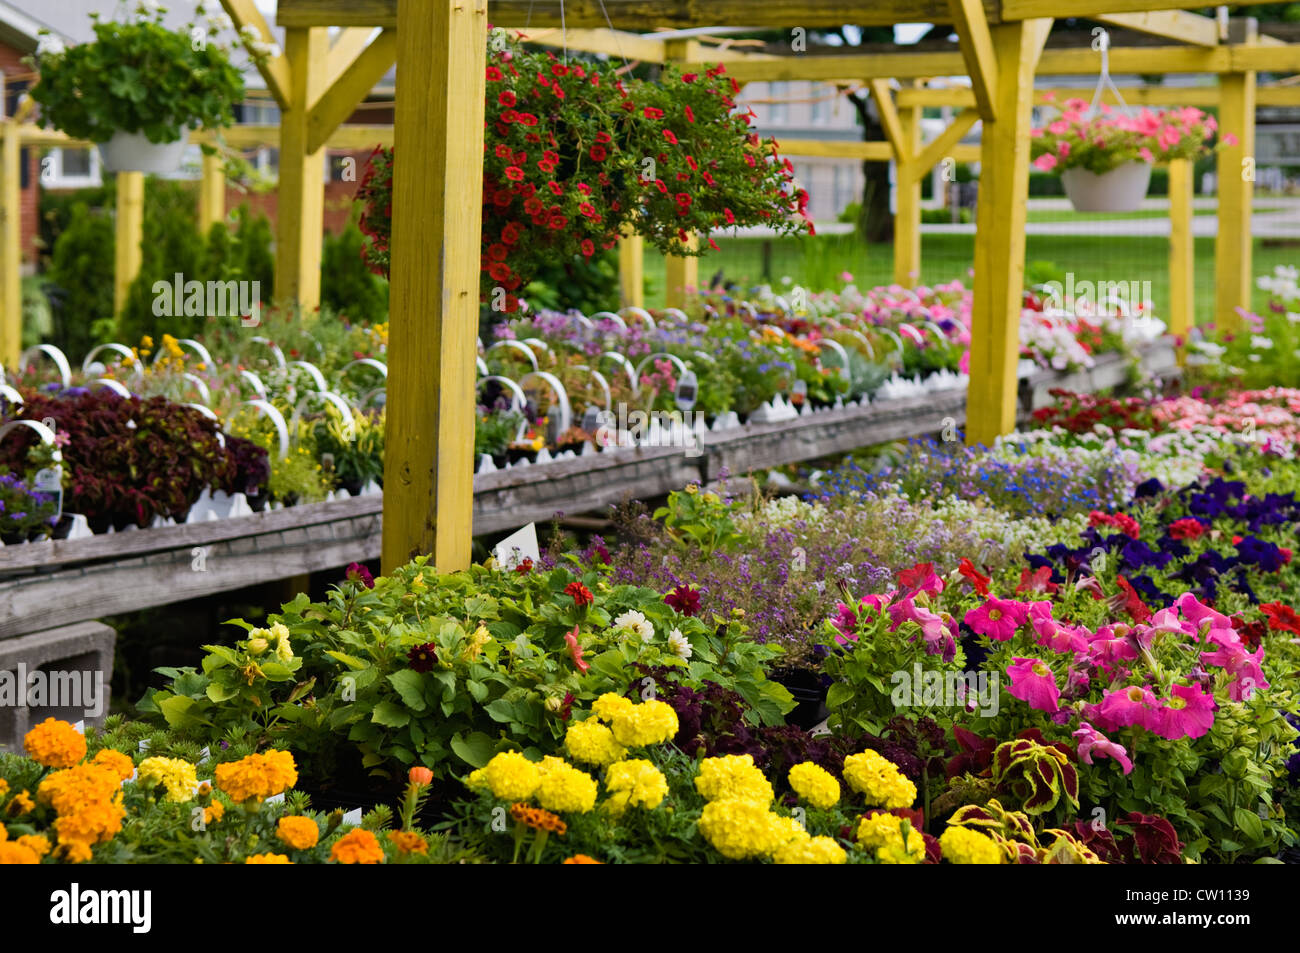 Plants and Flowers for Sale at Flower Shop in Buckner, Kentucky - Stock Image